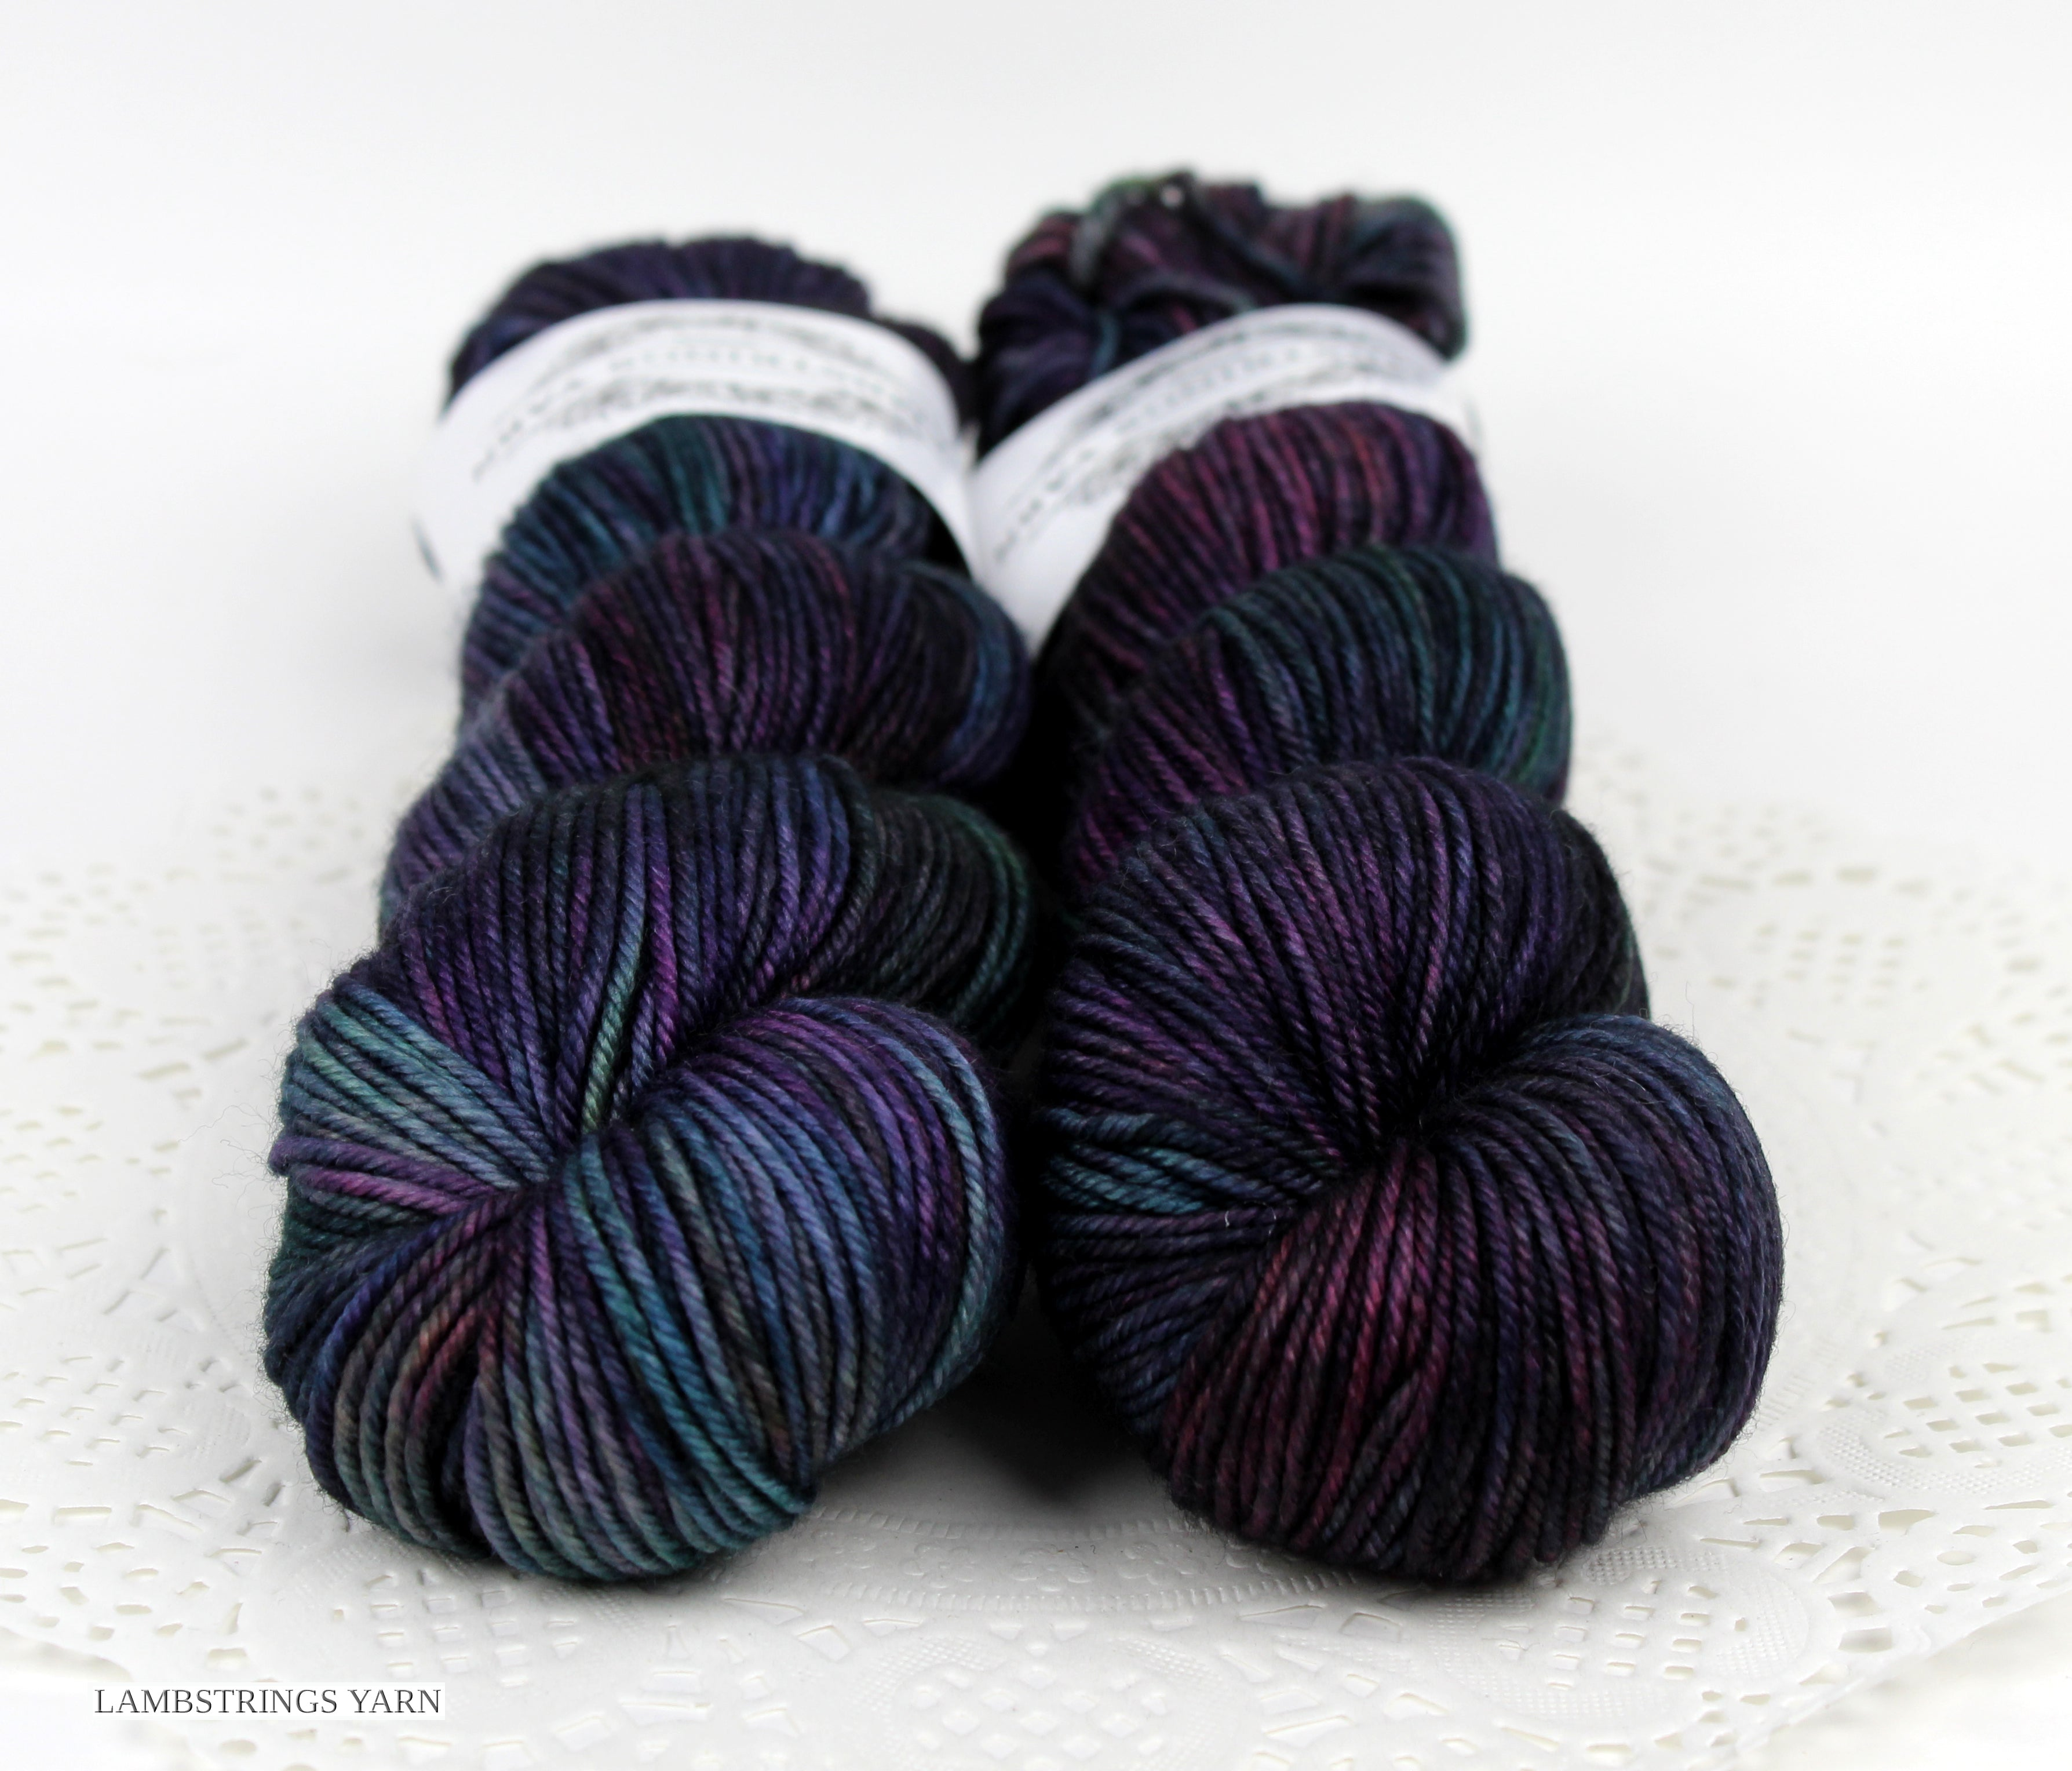 Ewetopia DK- Annabel Lee (Poe Collection)